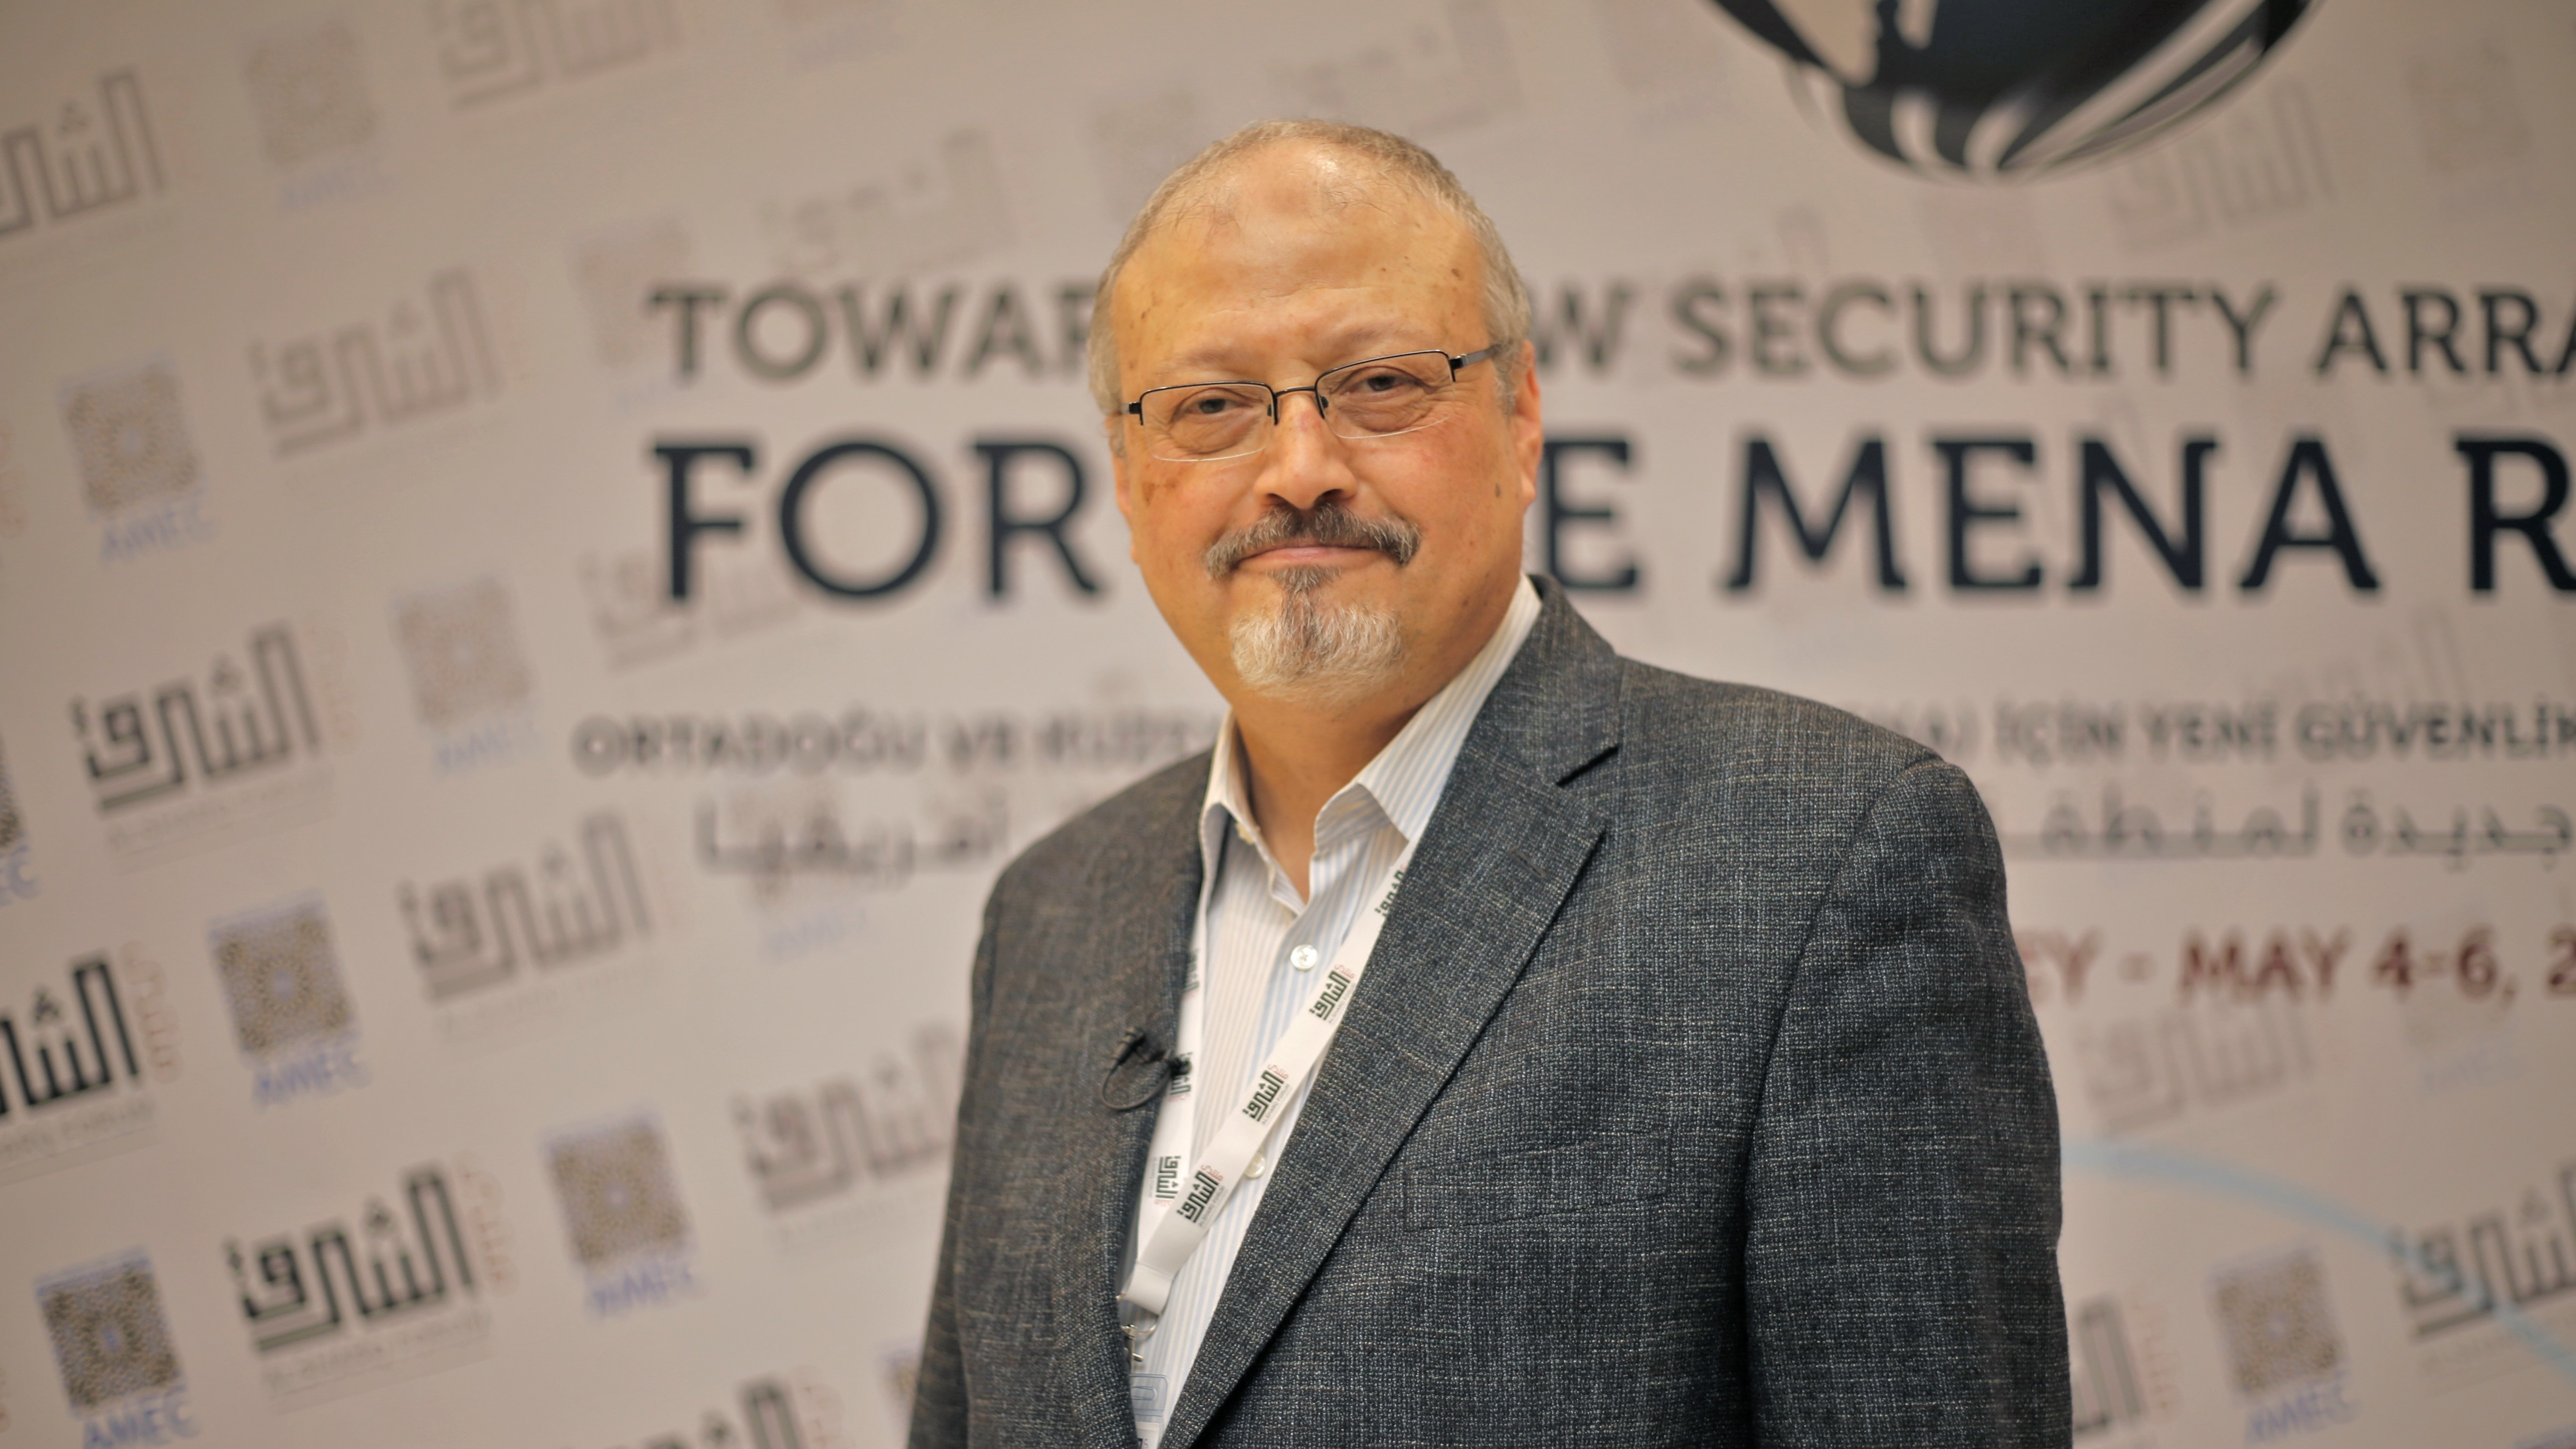 Journalist Jamal Khashoggi poses at an event in Istanbul, Turkey in a photo dated May 6, 2018. Saudi state media confirmed Khashoggi's death, but details remain fuzzy.